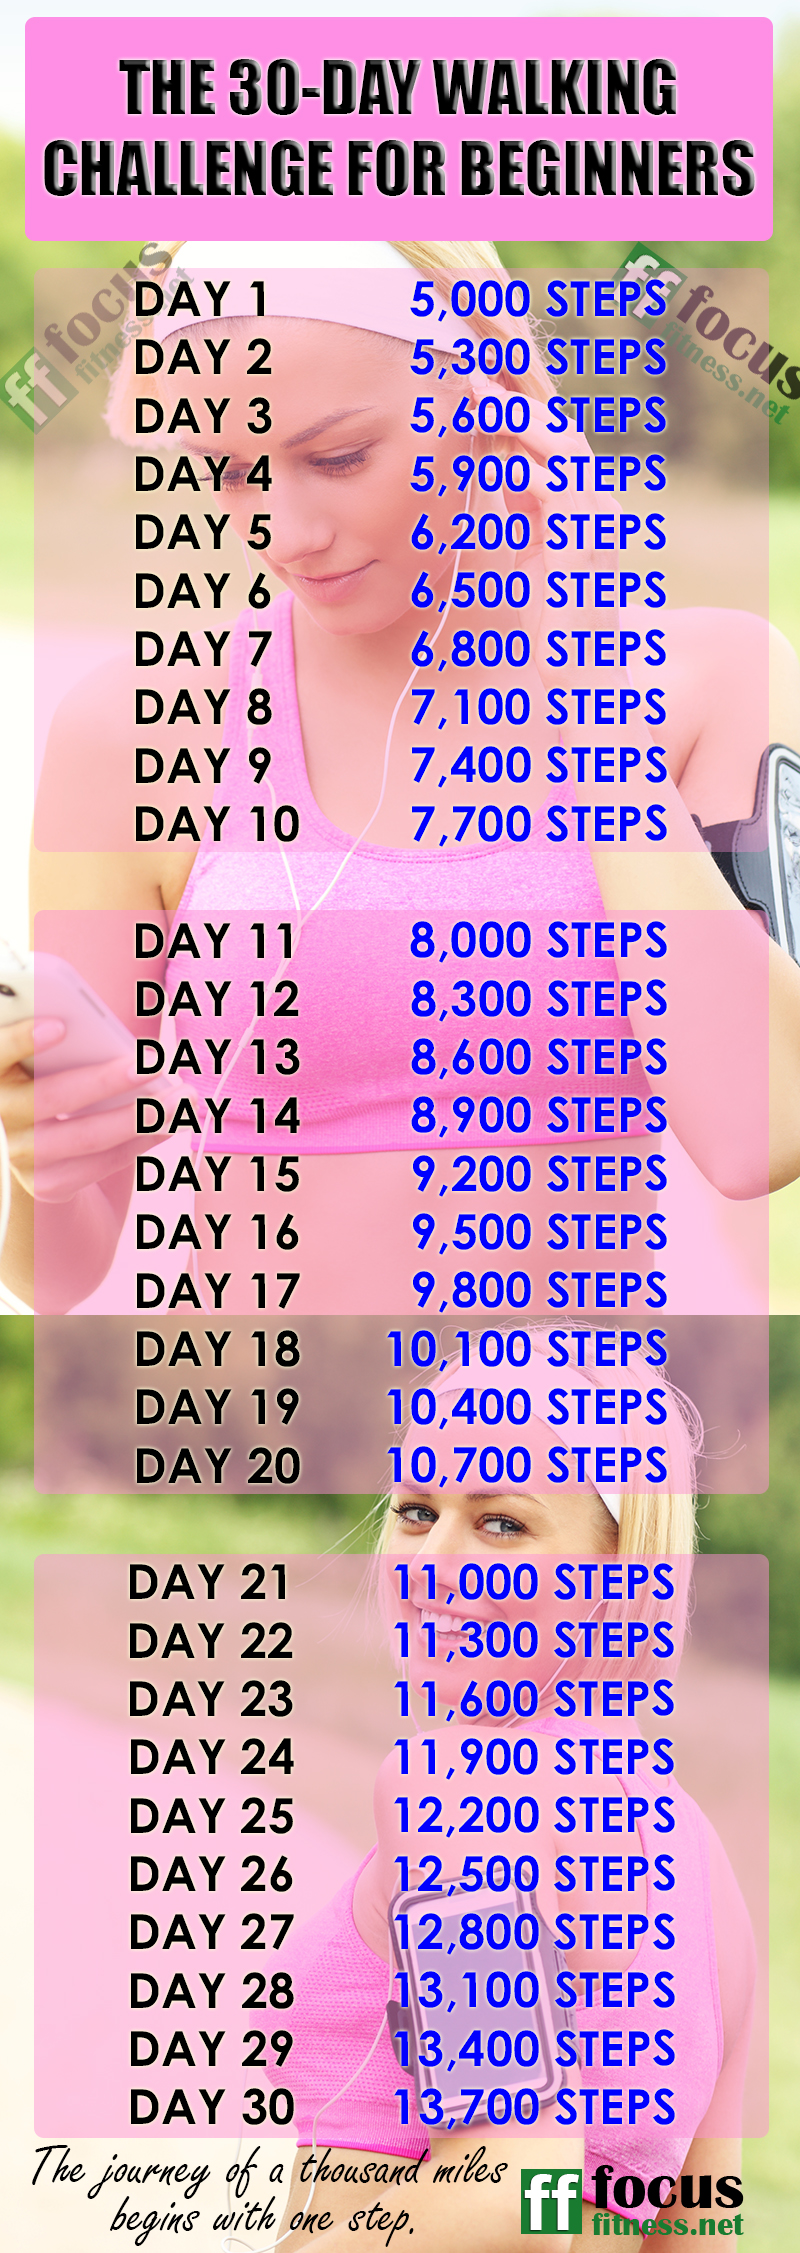 Take on the 30-day weight loss walking challenge for beginners to reach 13,000 steps in just 30 days. Day by day during the first week, you'll look slimmer #walking #challenge #weightloss #beginners #focusfitness